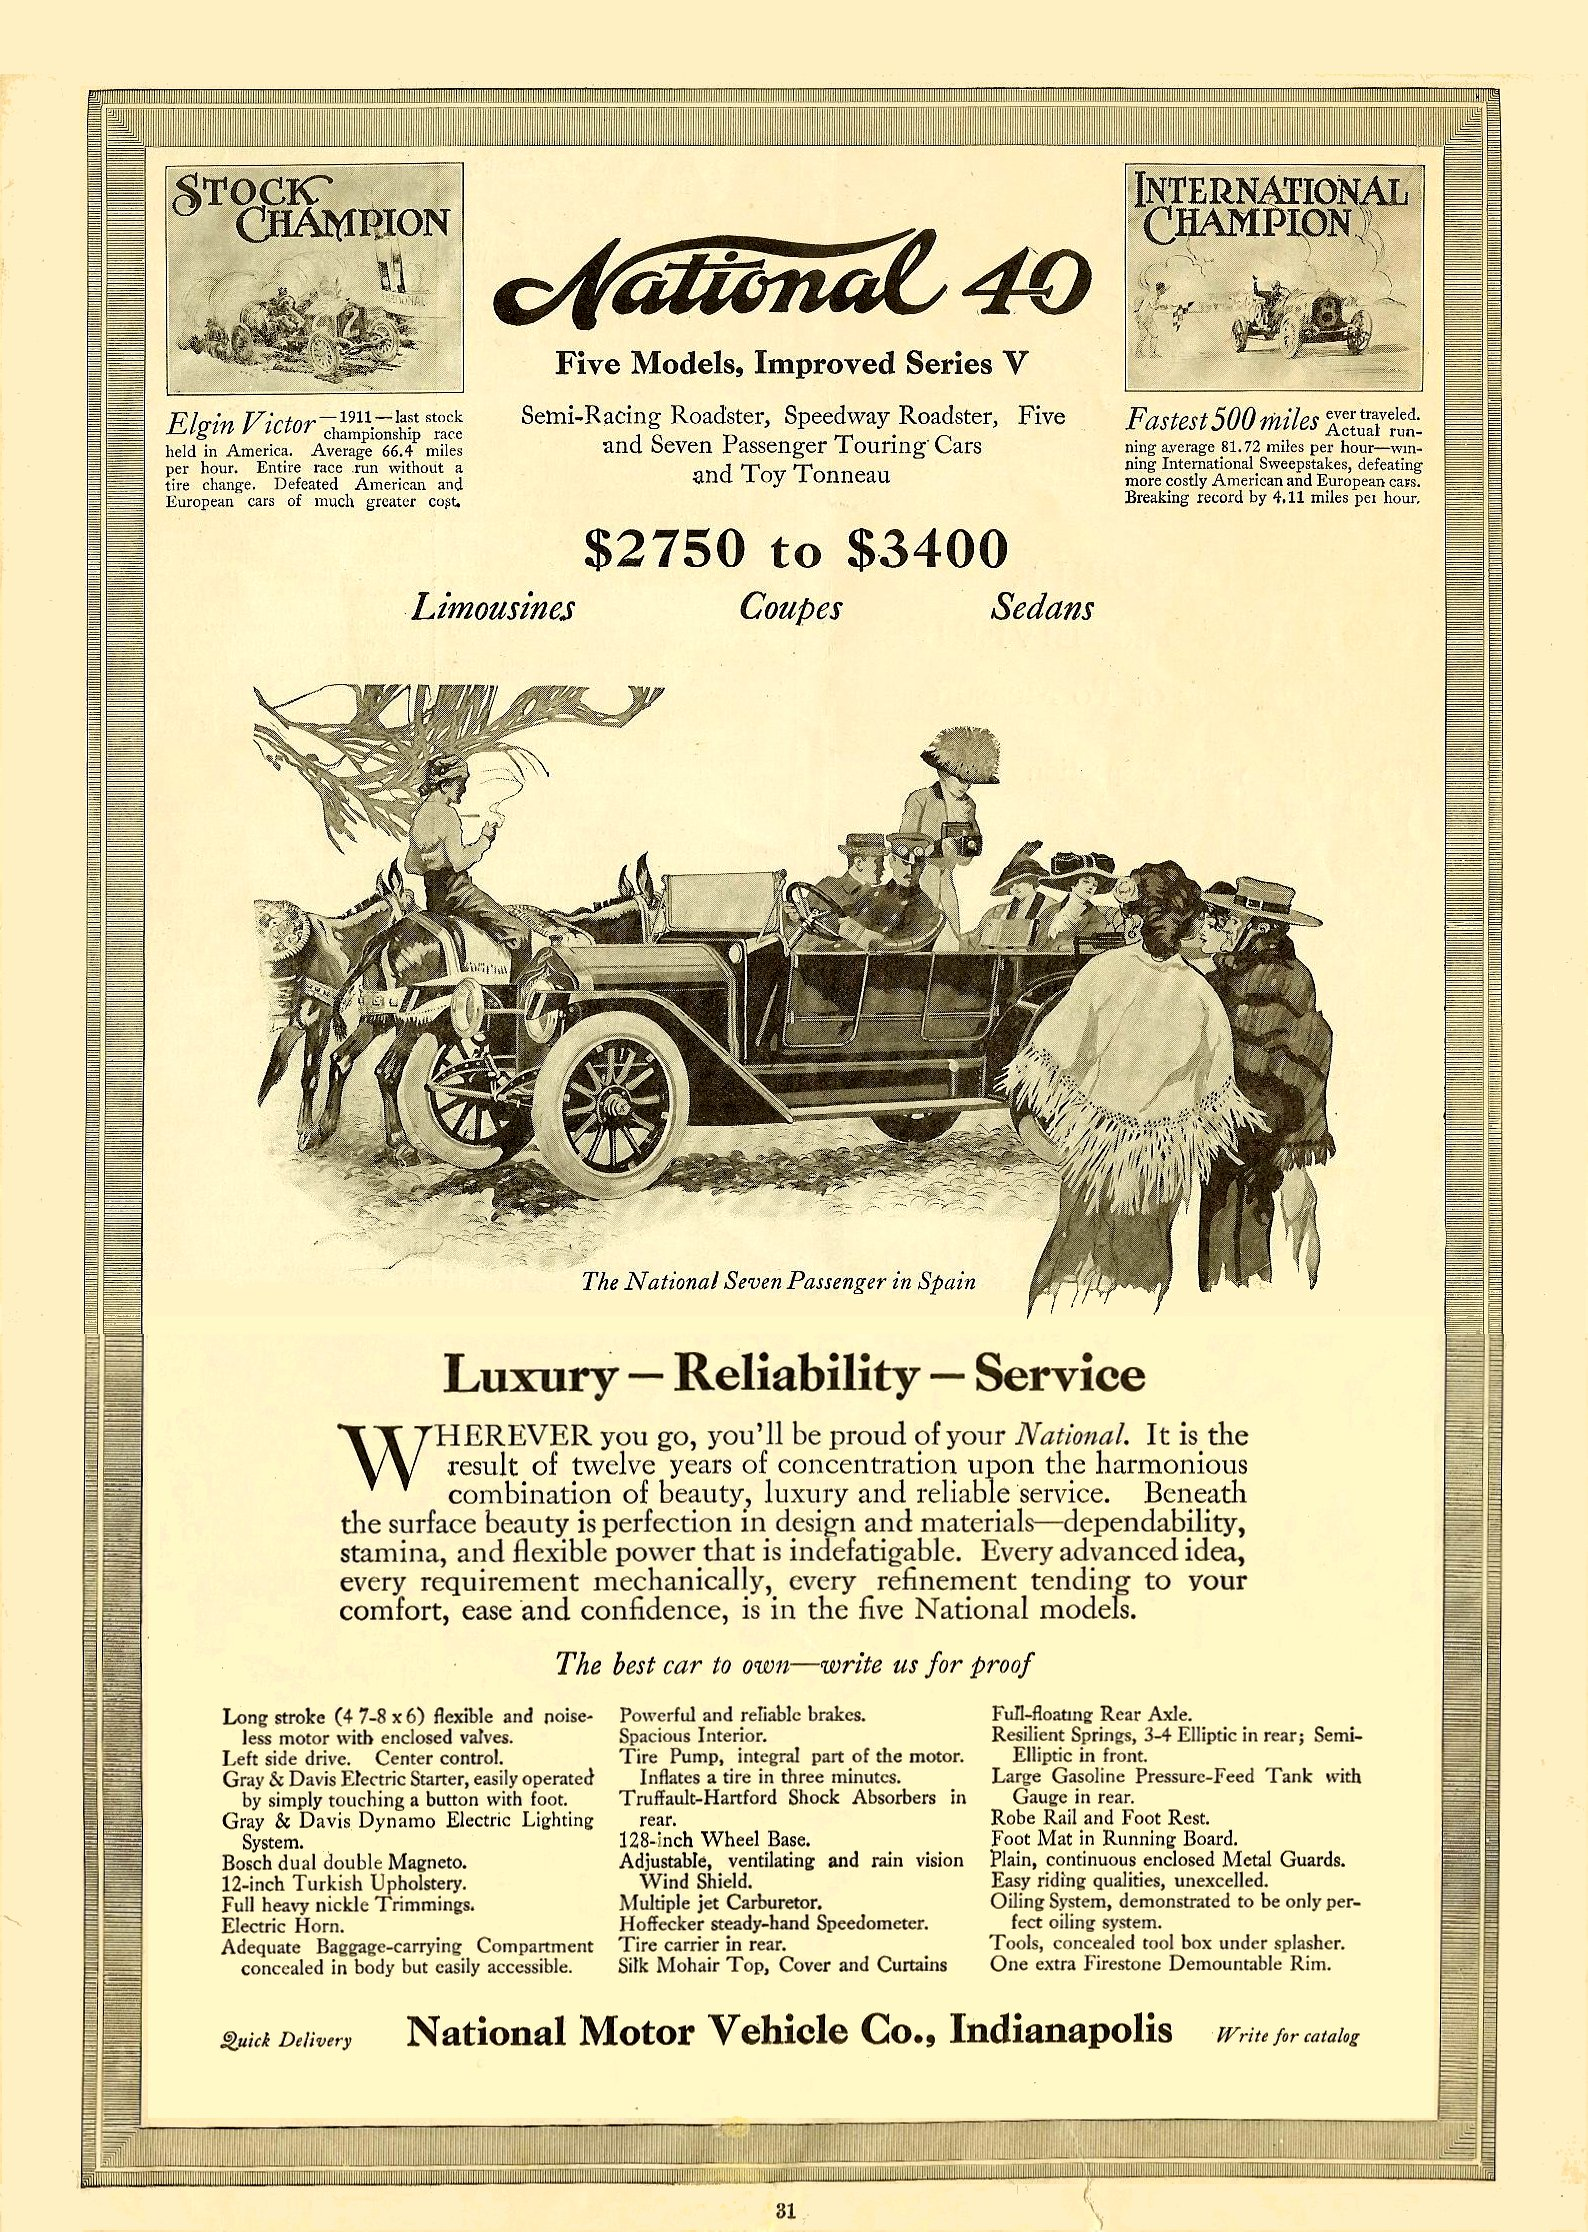 1913 1 11 NATIONAL National 40 Five Models, Improved Series V Harper's Weekly magazine January 11, 1913 9.5″x14″ page 31